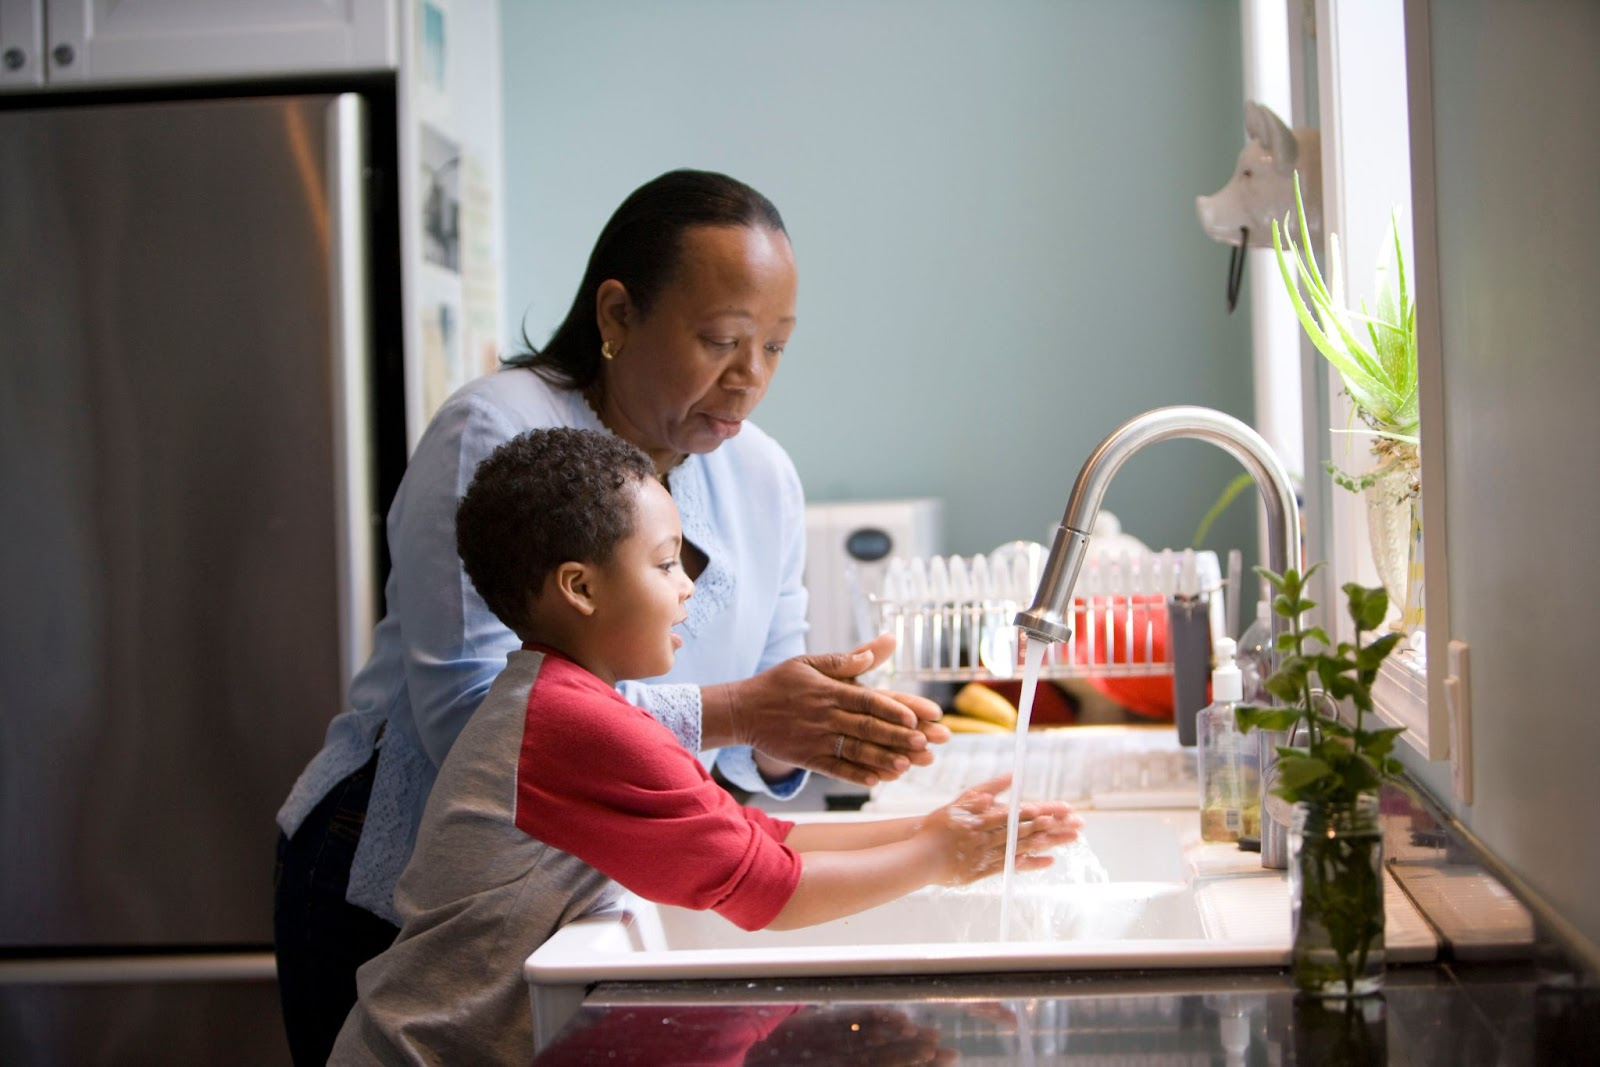 Toddler and parent washing hands as fun hygiene activity